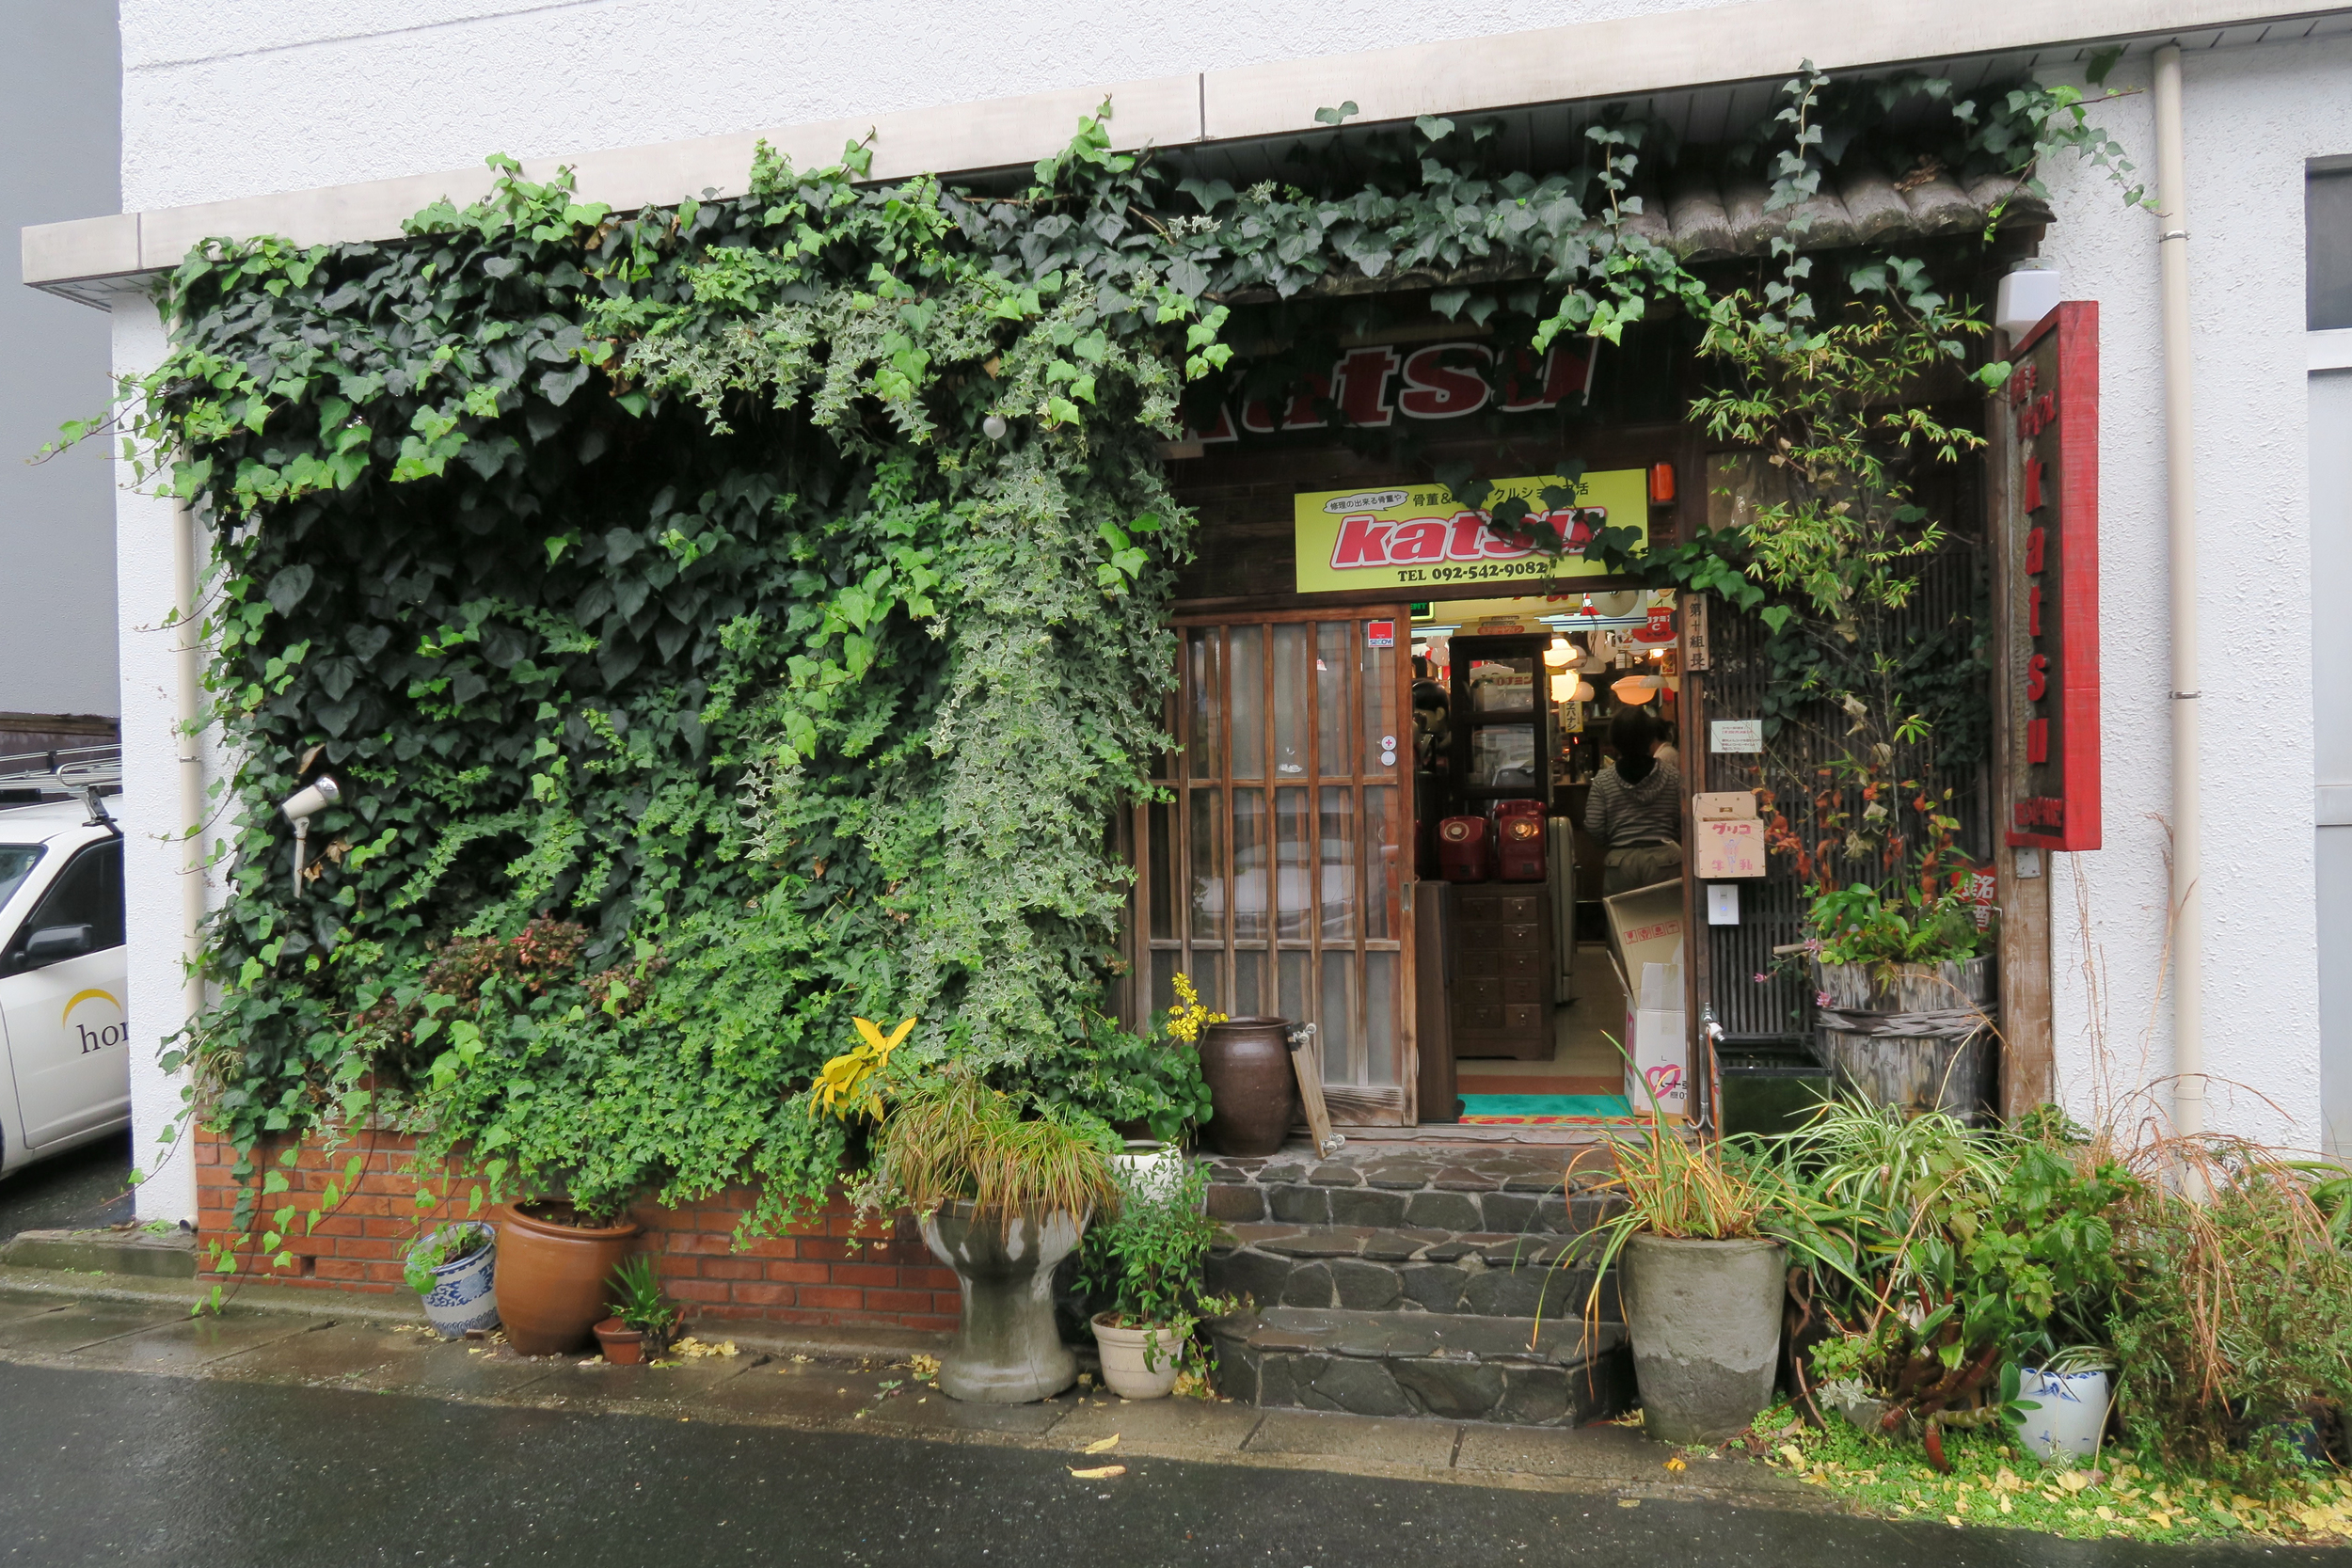 Antique and Recycle Shop Katsu  骨董&リサイクル Katsu